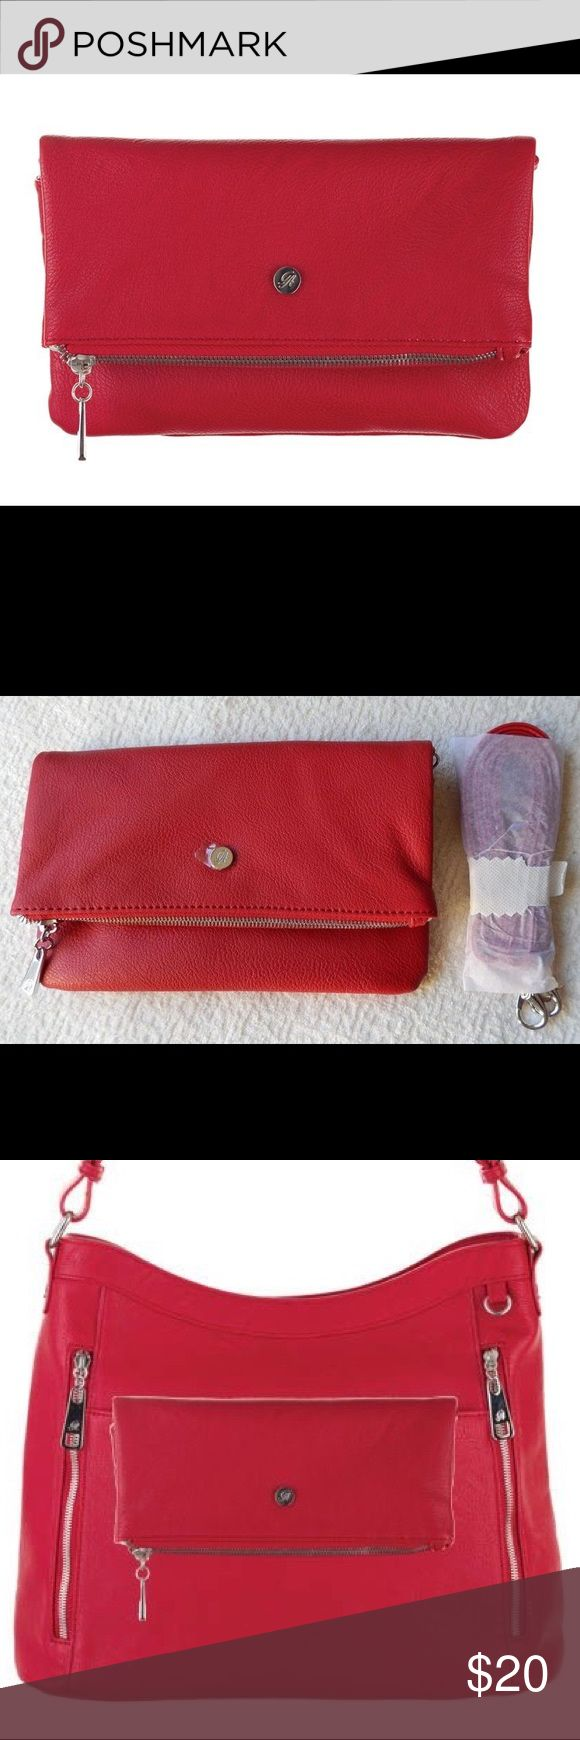 Grace Adele Claire Scarlet Clutch Brand New! Never out of the package.  Scarlet (Red) faux leather clutch. Fold over style super cute! Grace Adele Bags Clutches & Wristlets